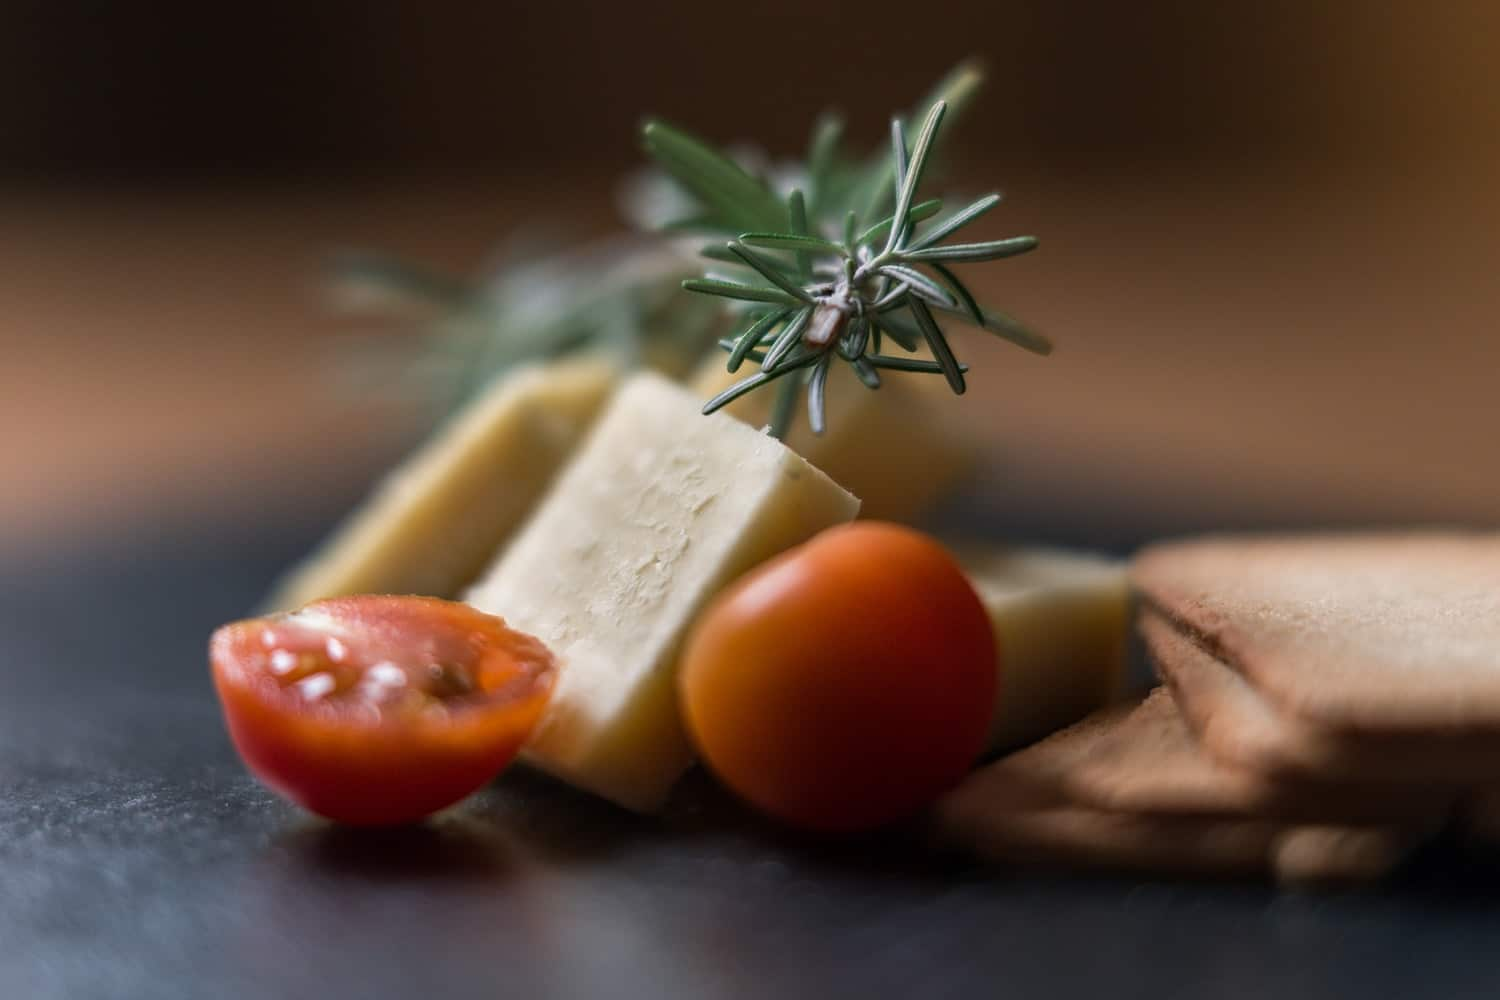 South Wales food photographer